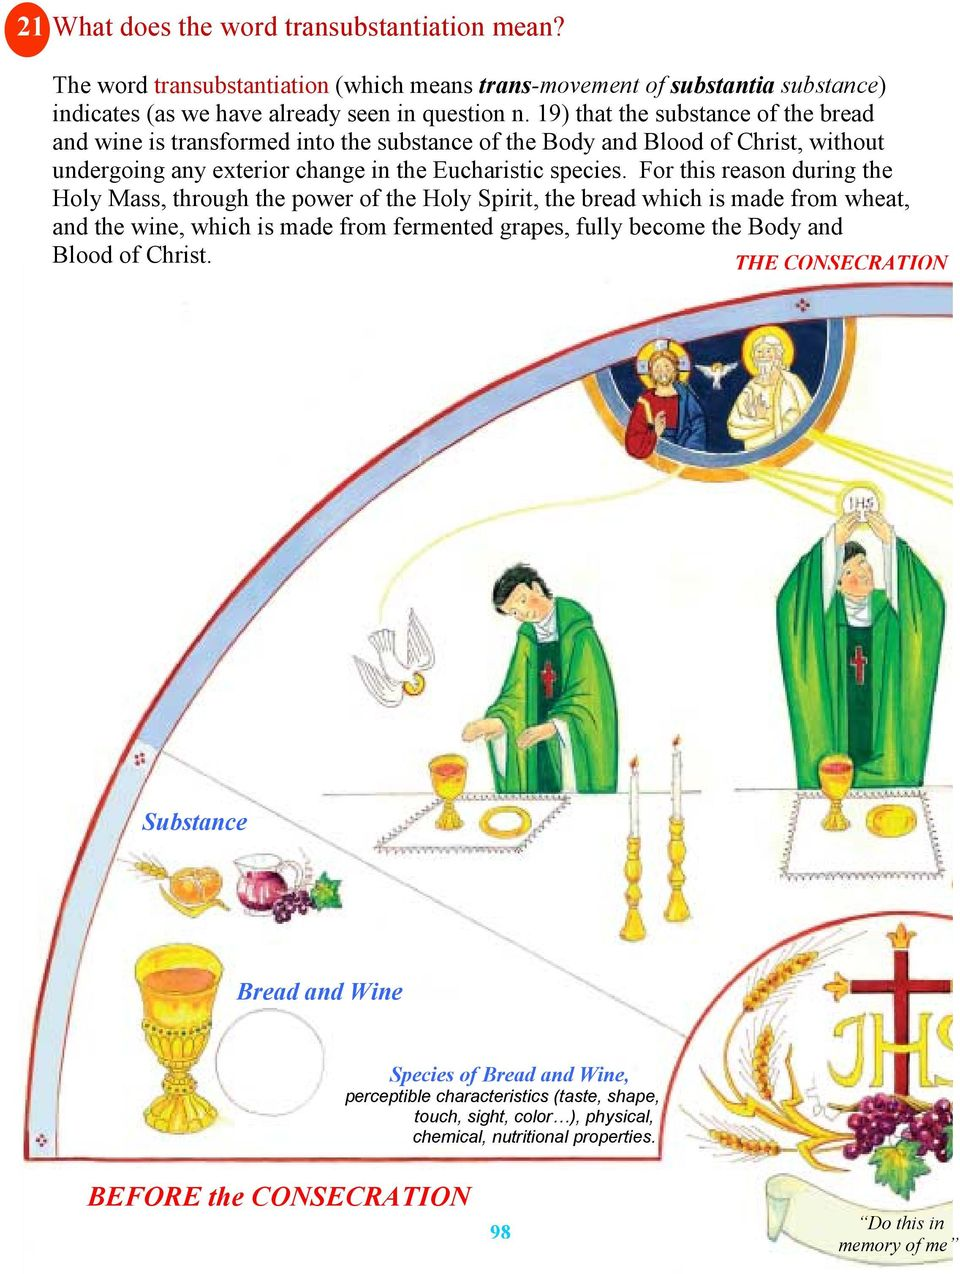 For this reason during the Holy Mass, through the power of the Holy Spirit, the bread which is made from wheat, and the wine, which is made from fermented grapes, fully become the Body and Blood of